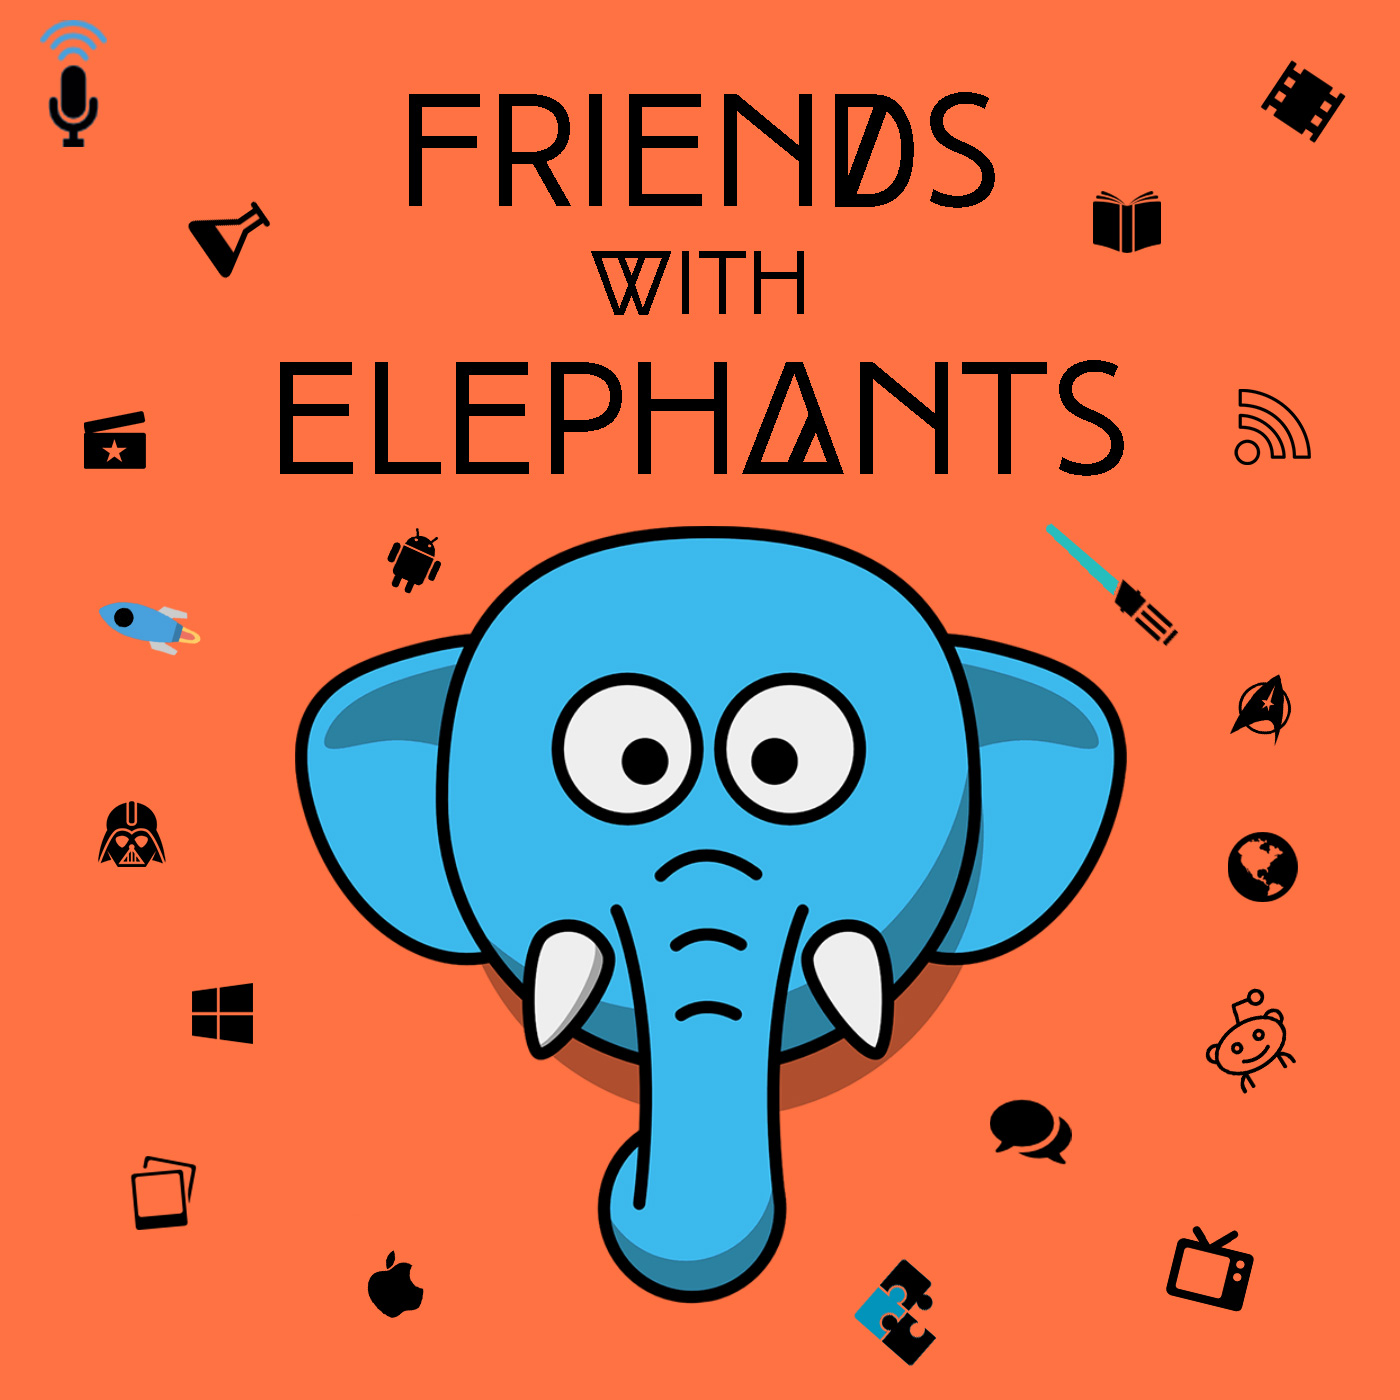 Friends with Elephants